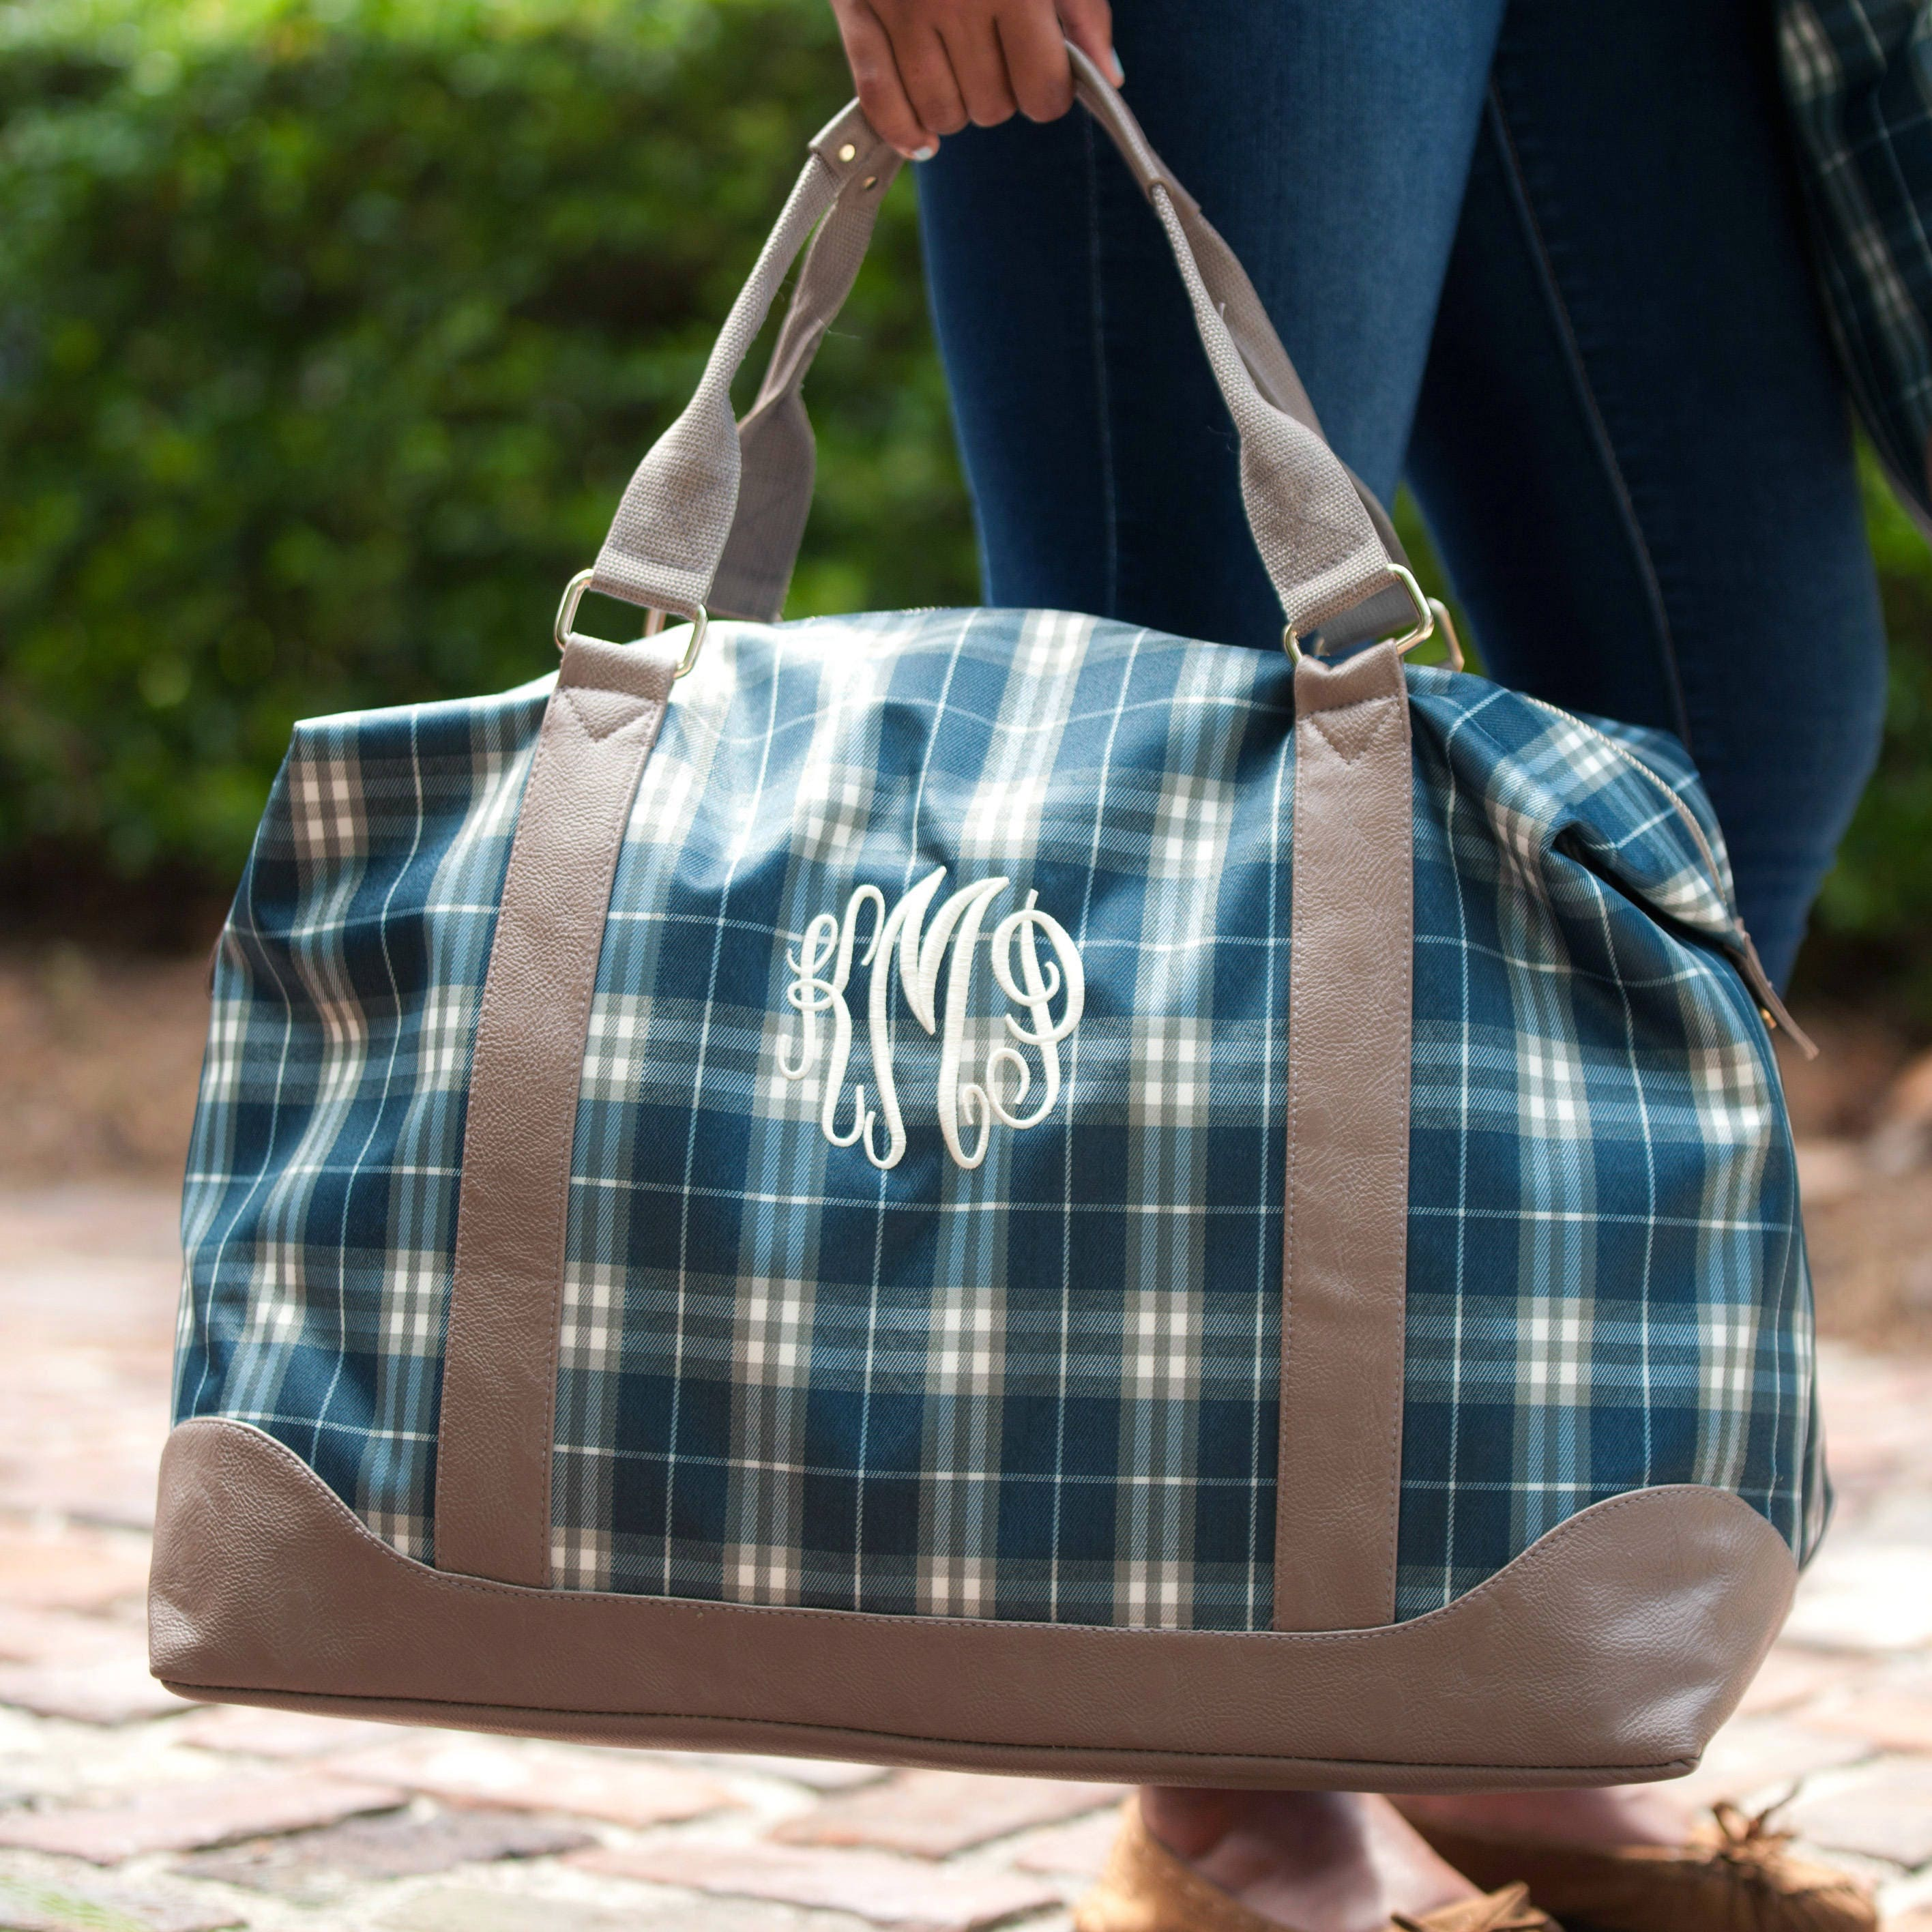 37d81f9a39 Monogrammed Weekend Bag Plaid Middleton Luggage Tote Bag Overnight Duffle  Duffel